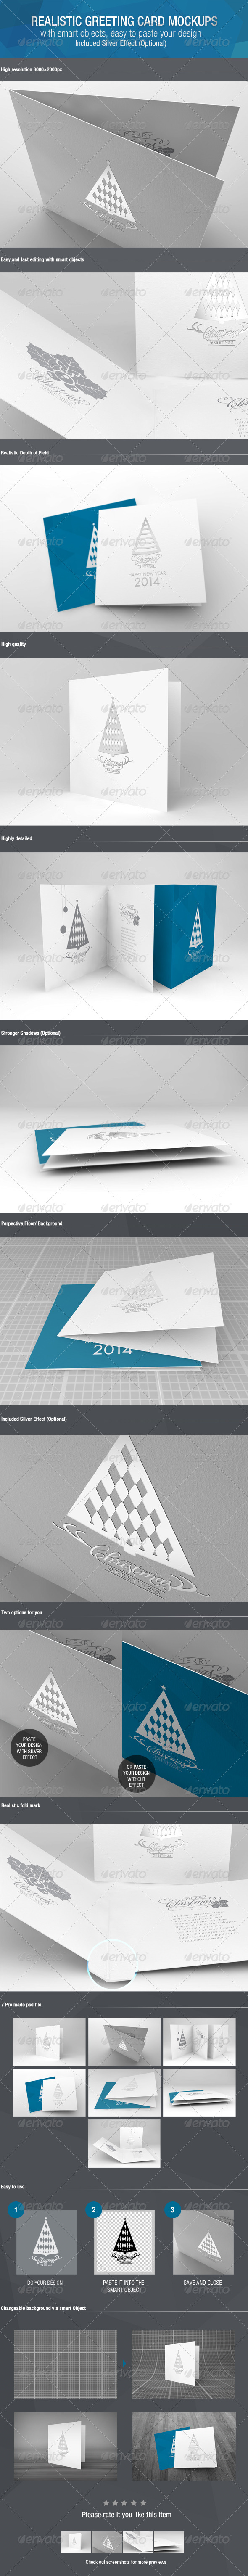 GraphicRiver Realistic Greeting Card Mockups 6243869